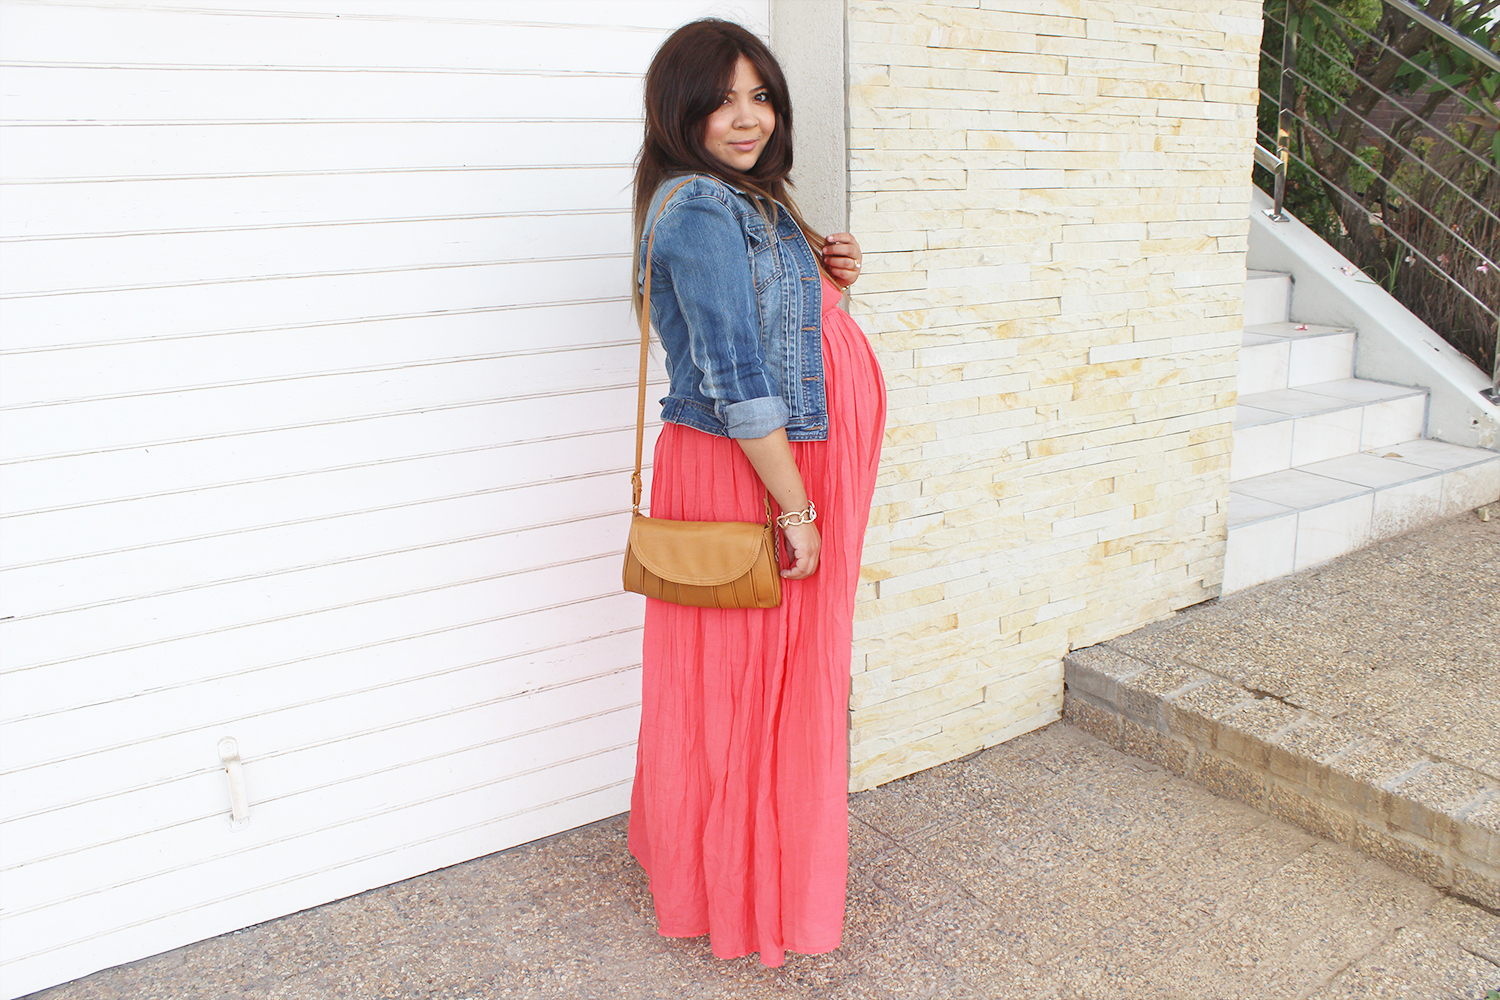 Where To Buy Maternity Clothing Beauty Clothes